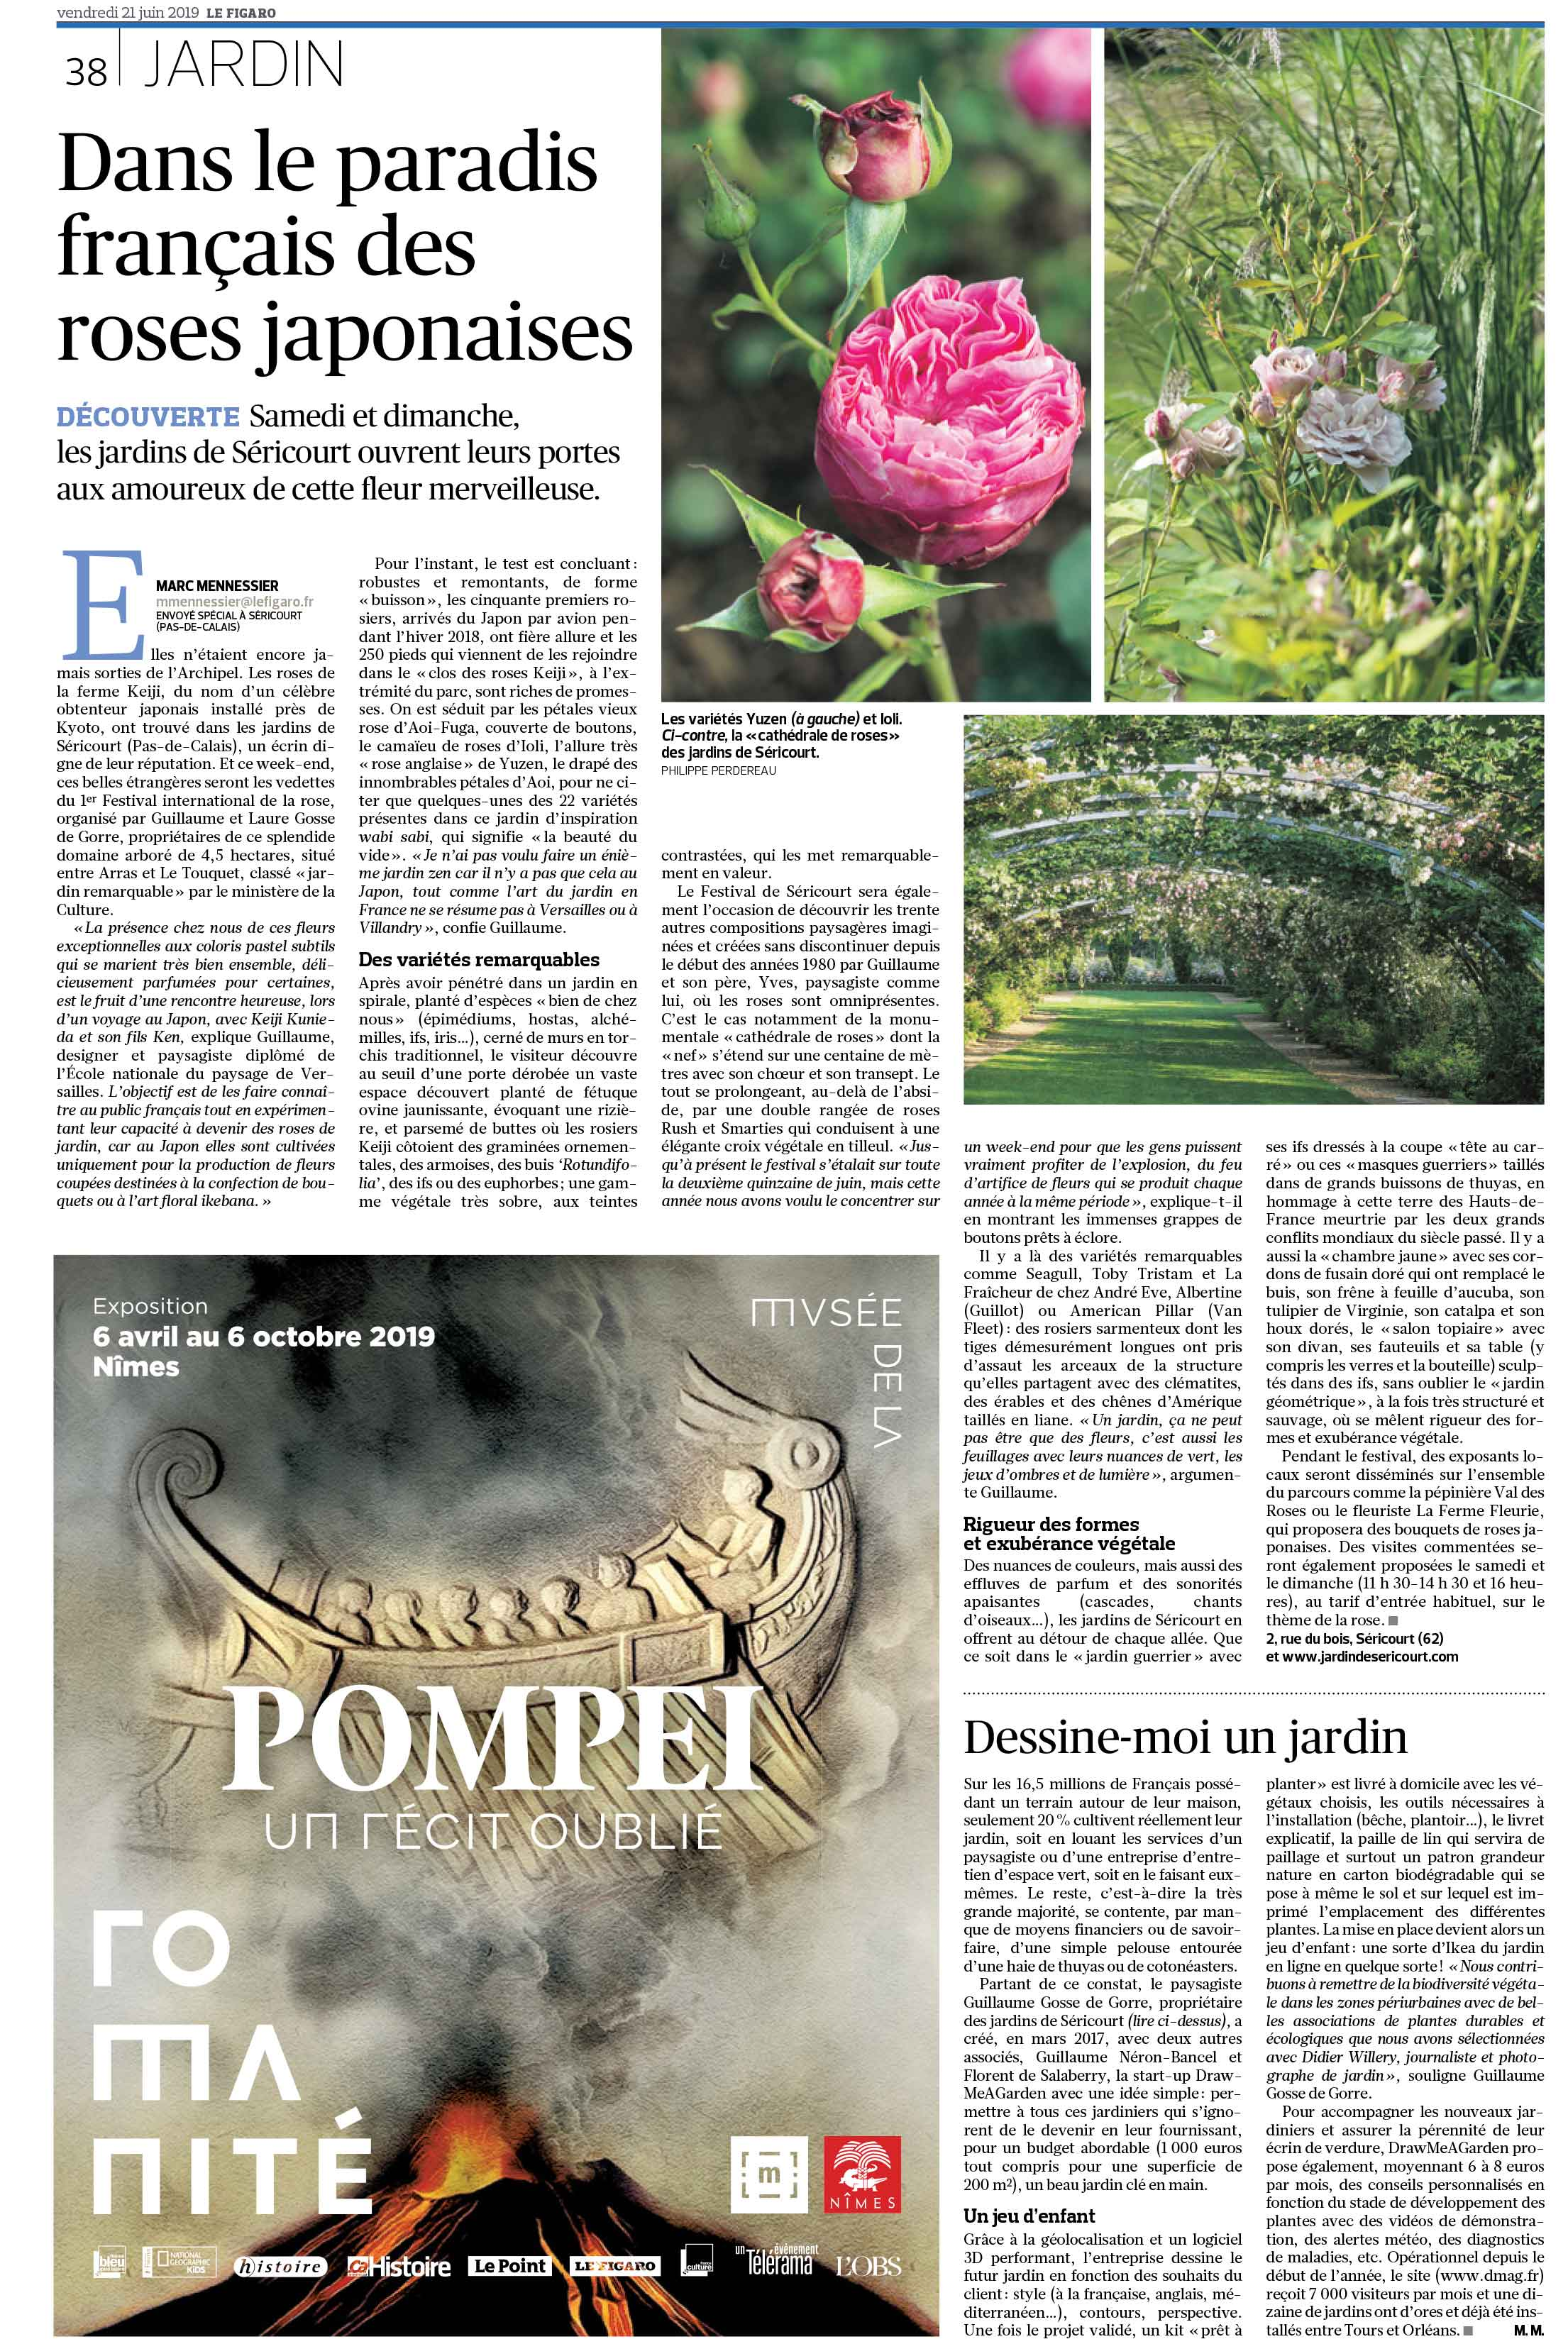 Press report on Draw Me A Garden published in Le Figaro paper